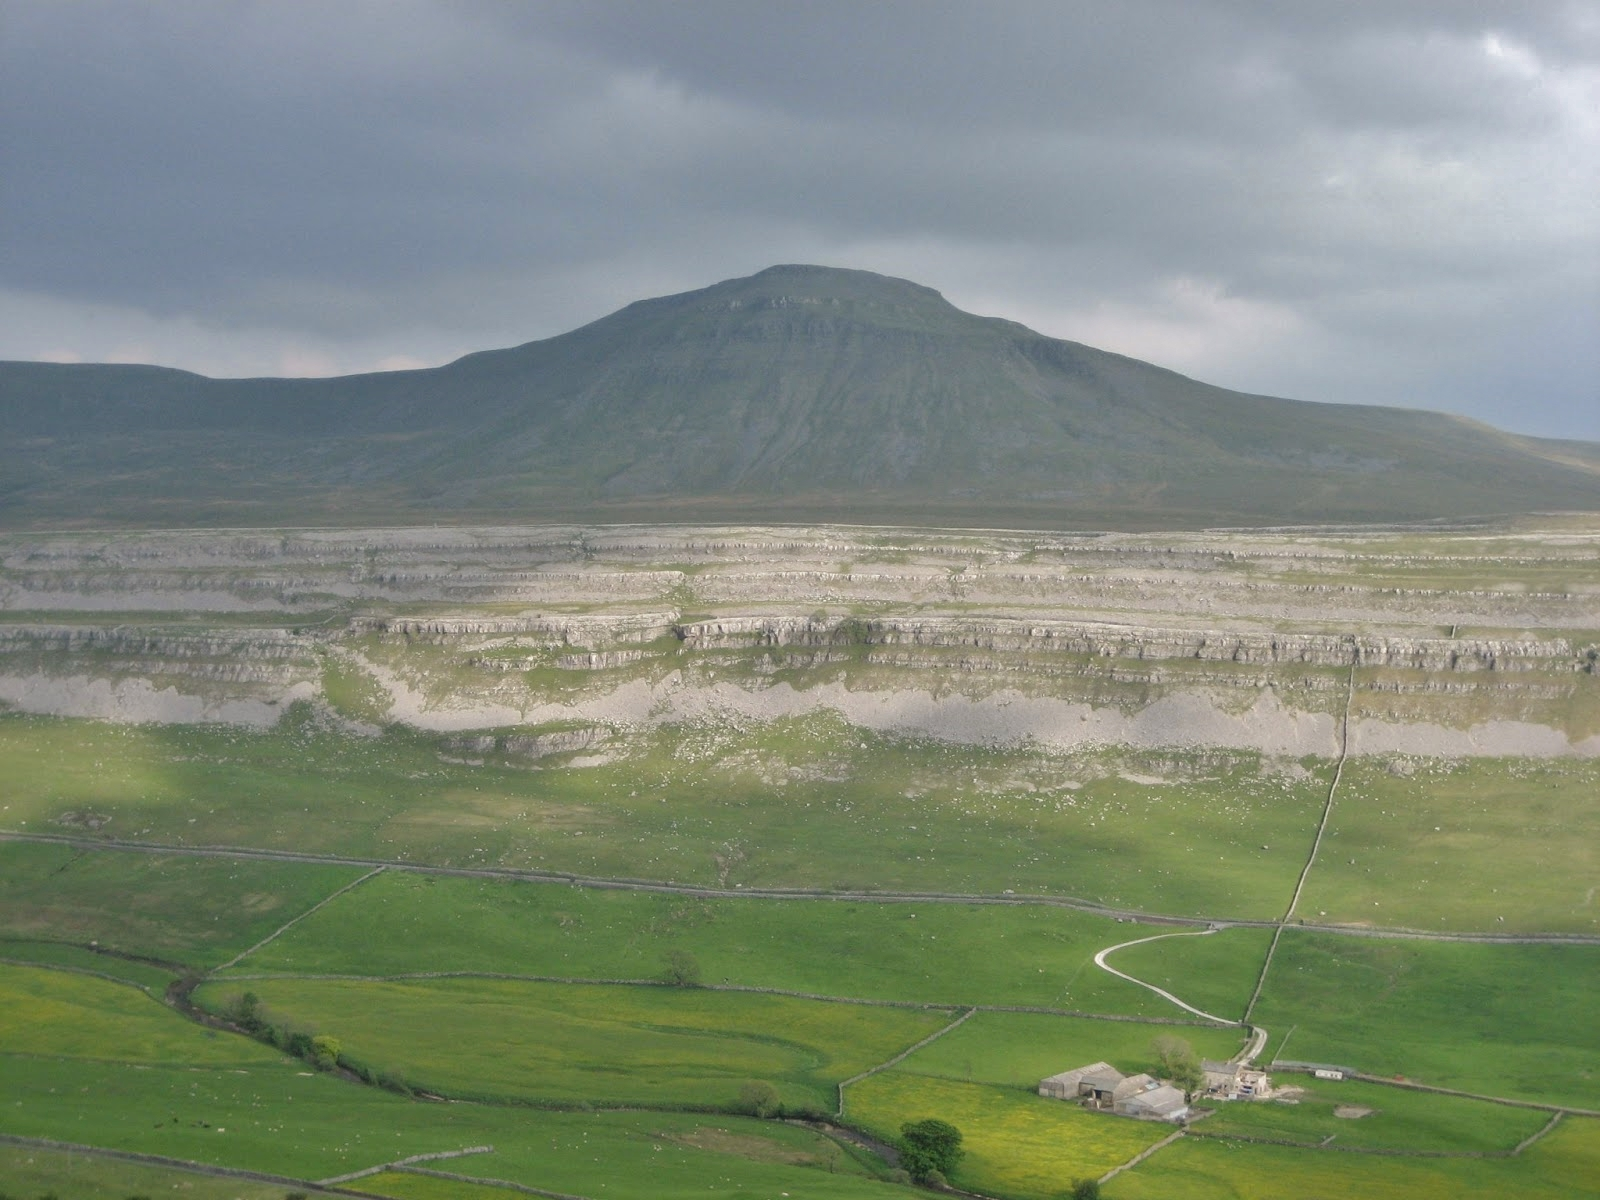 The Great Scar Limestone plateau of Ingleborough.  The main scree apron marks the division between the Cove and Gordale Limestones.  Much of the lower Cove Limestone is covered by glacial till, but a small cliff of it is clearly seen below the scree and just left of centre. Stephen Oldfield